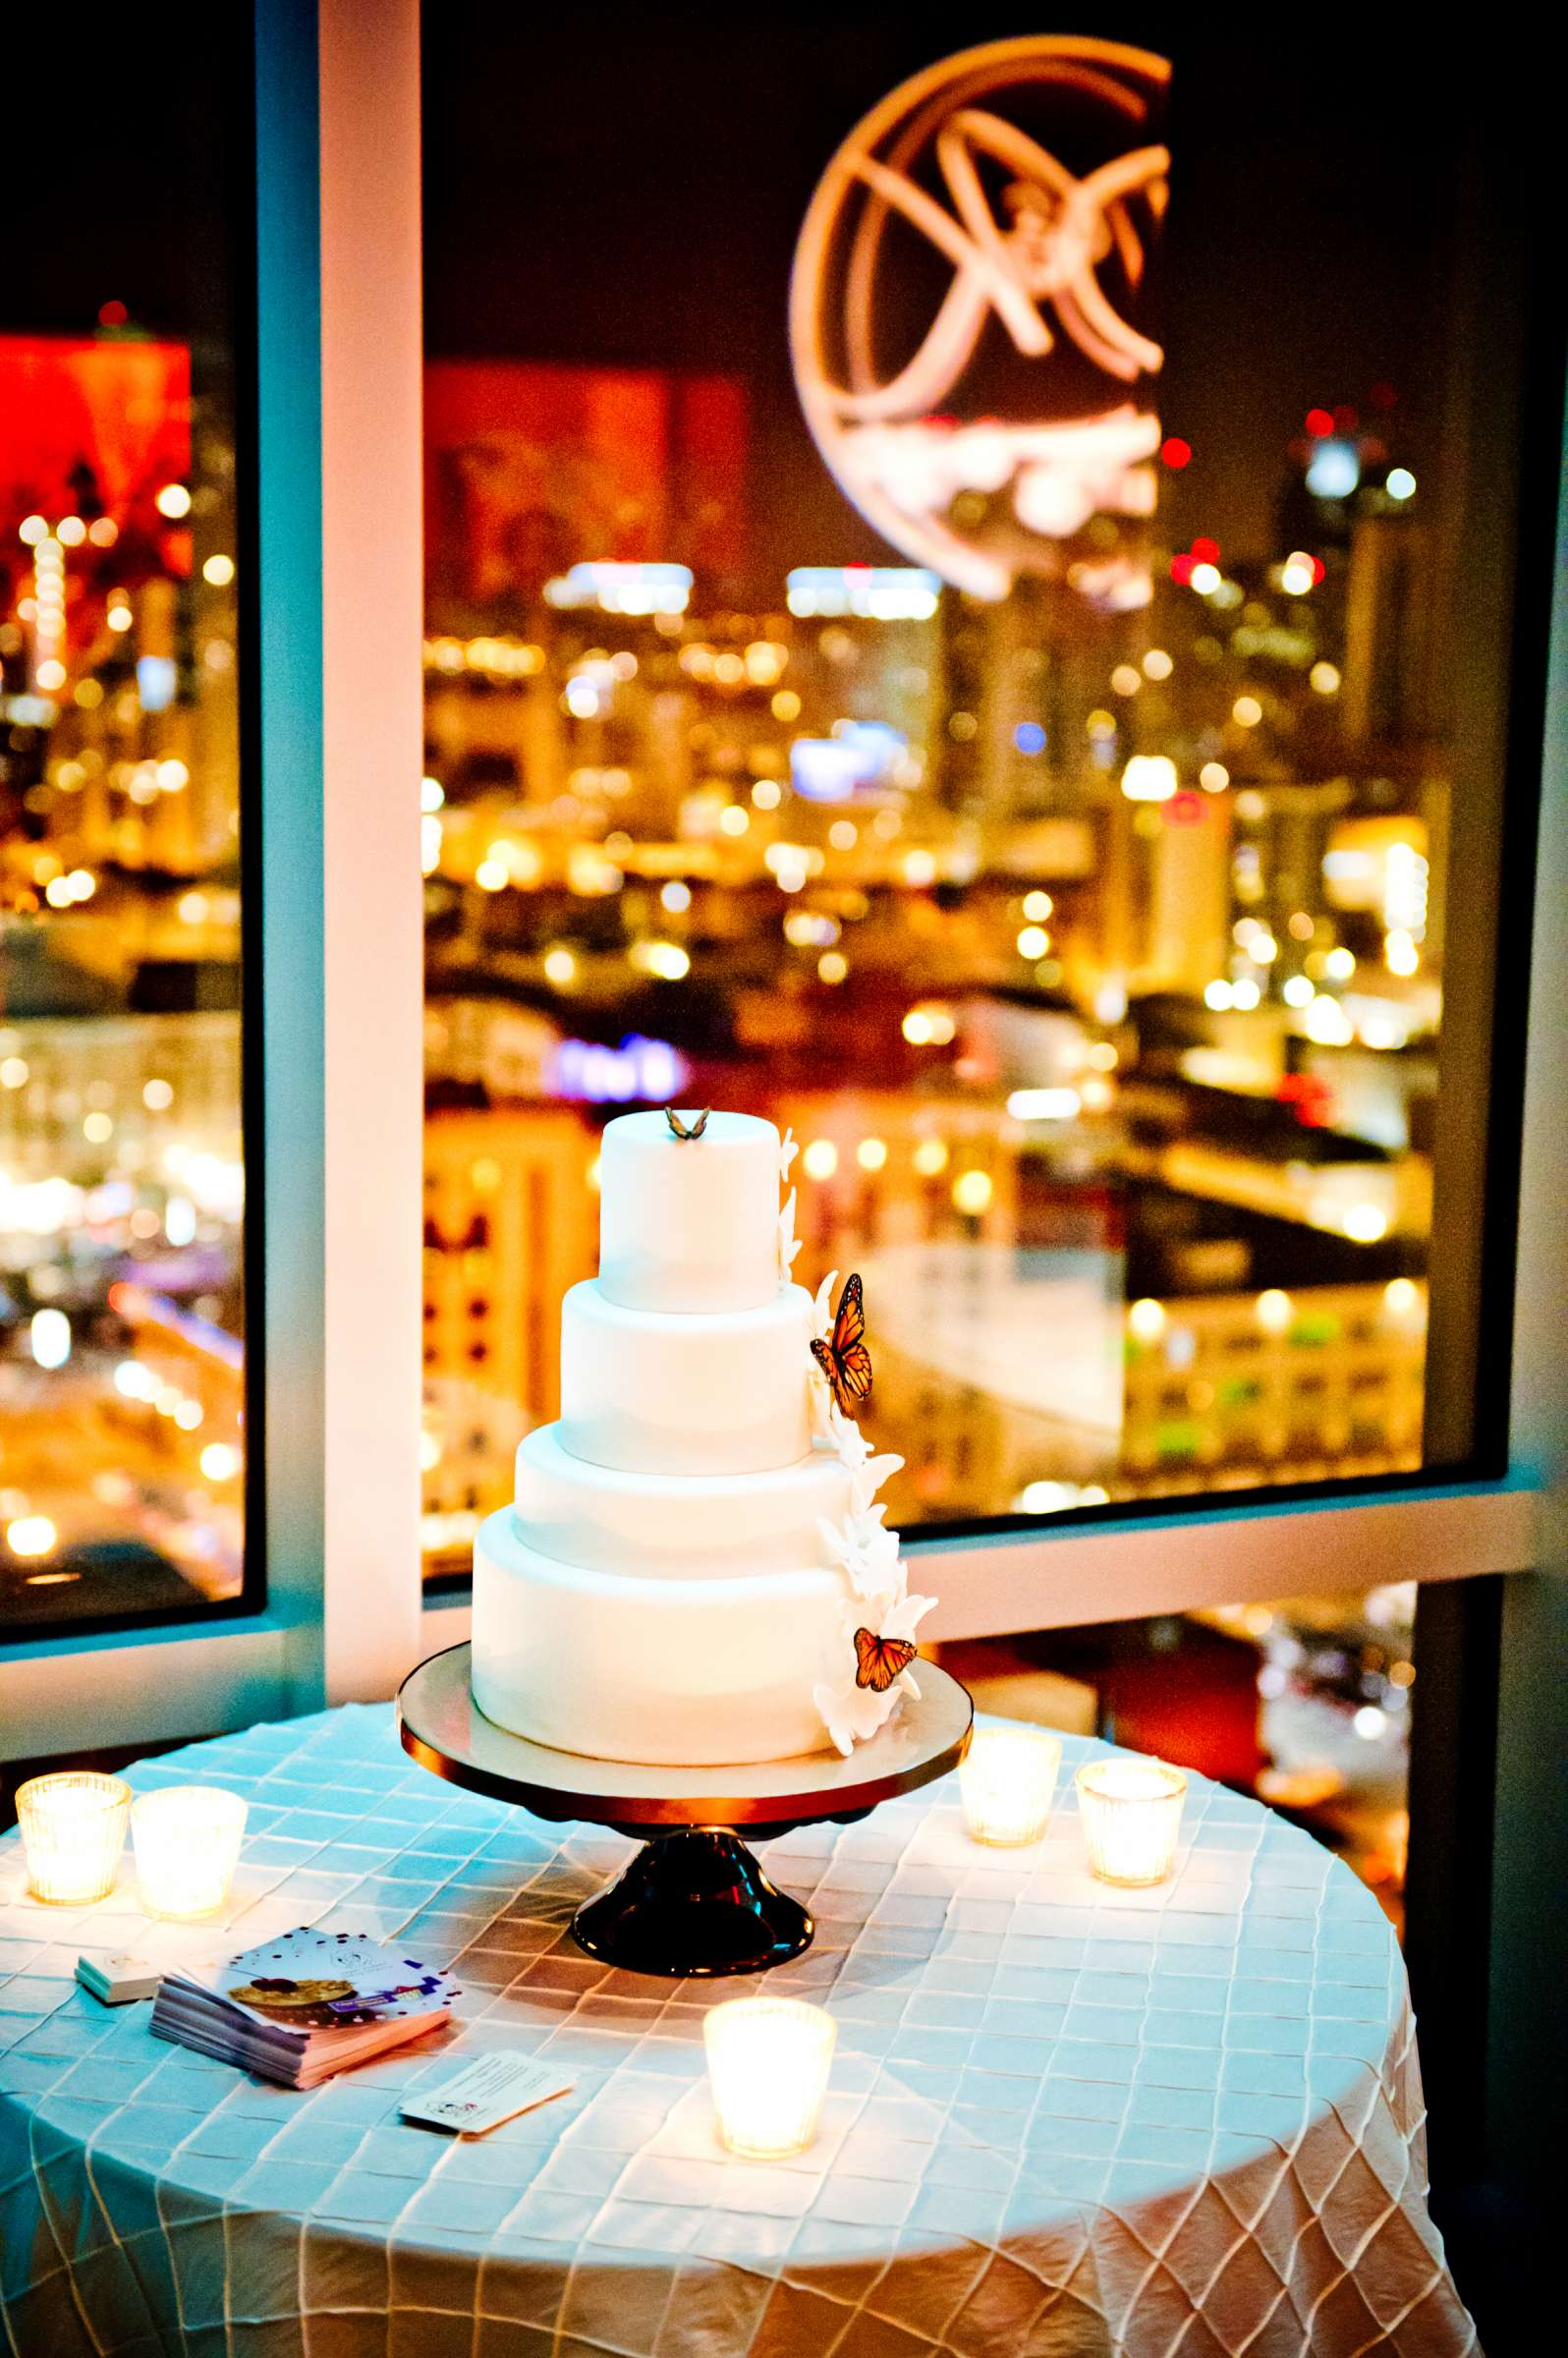 Ultimate Skybox Wedding coordinated by Creative Affairs Inc, Open House Wedding Photo #13 by True Photography